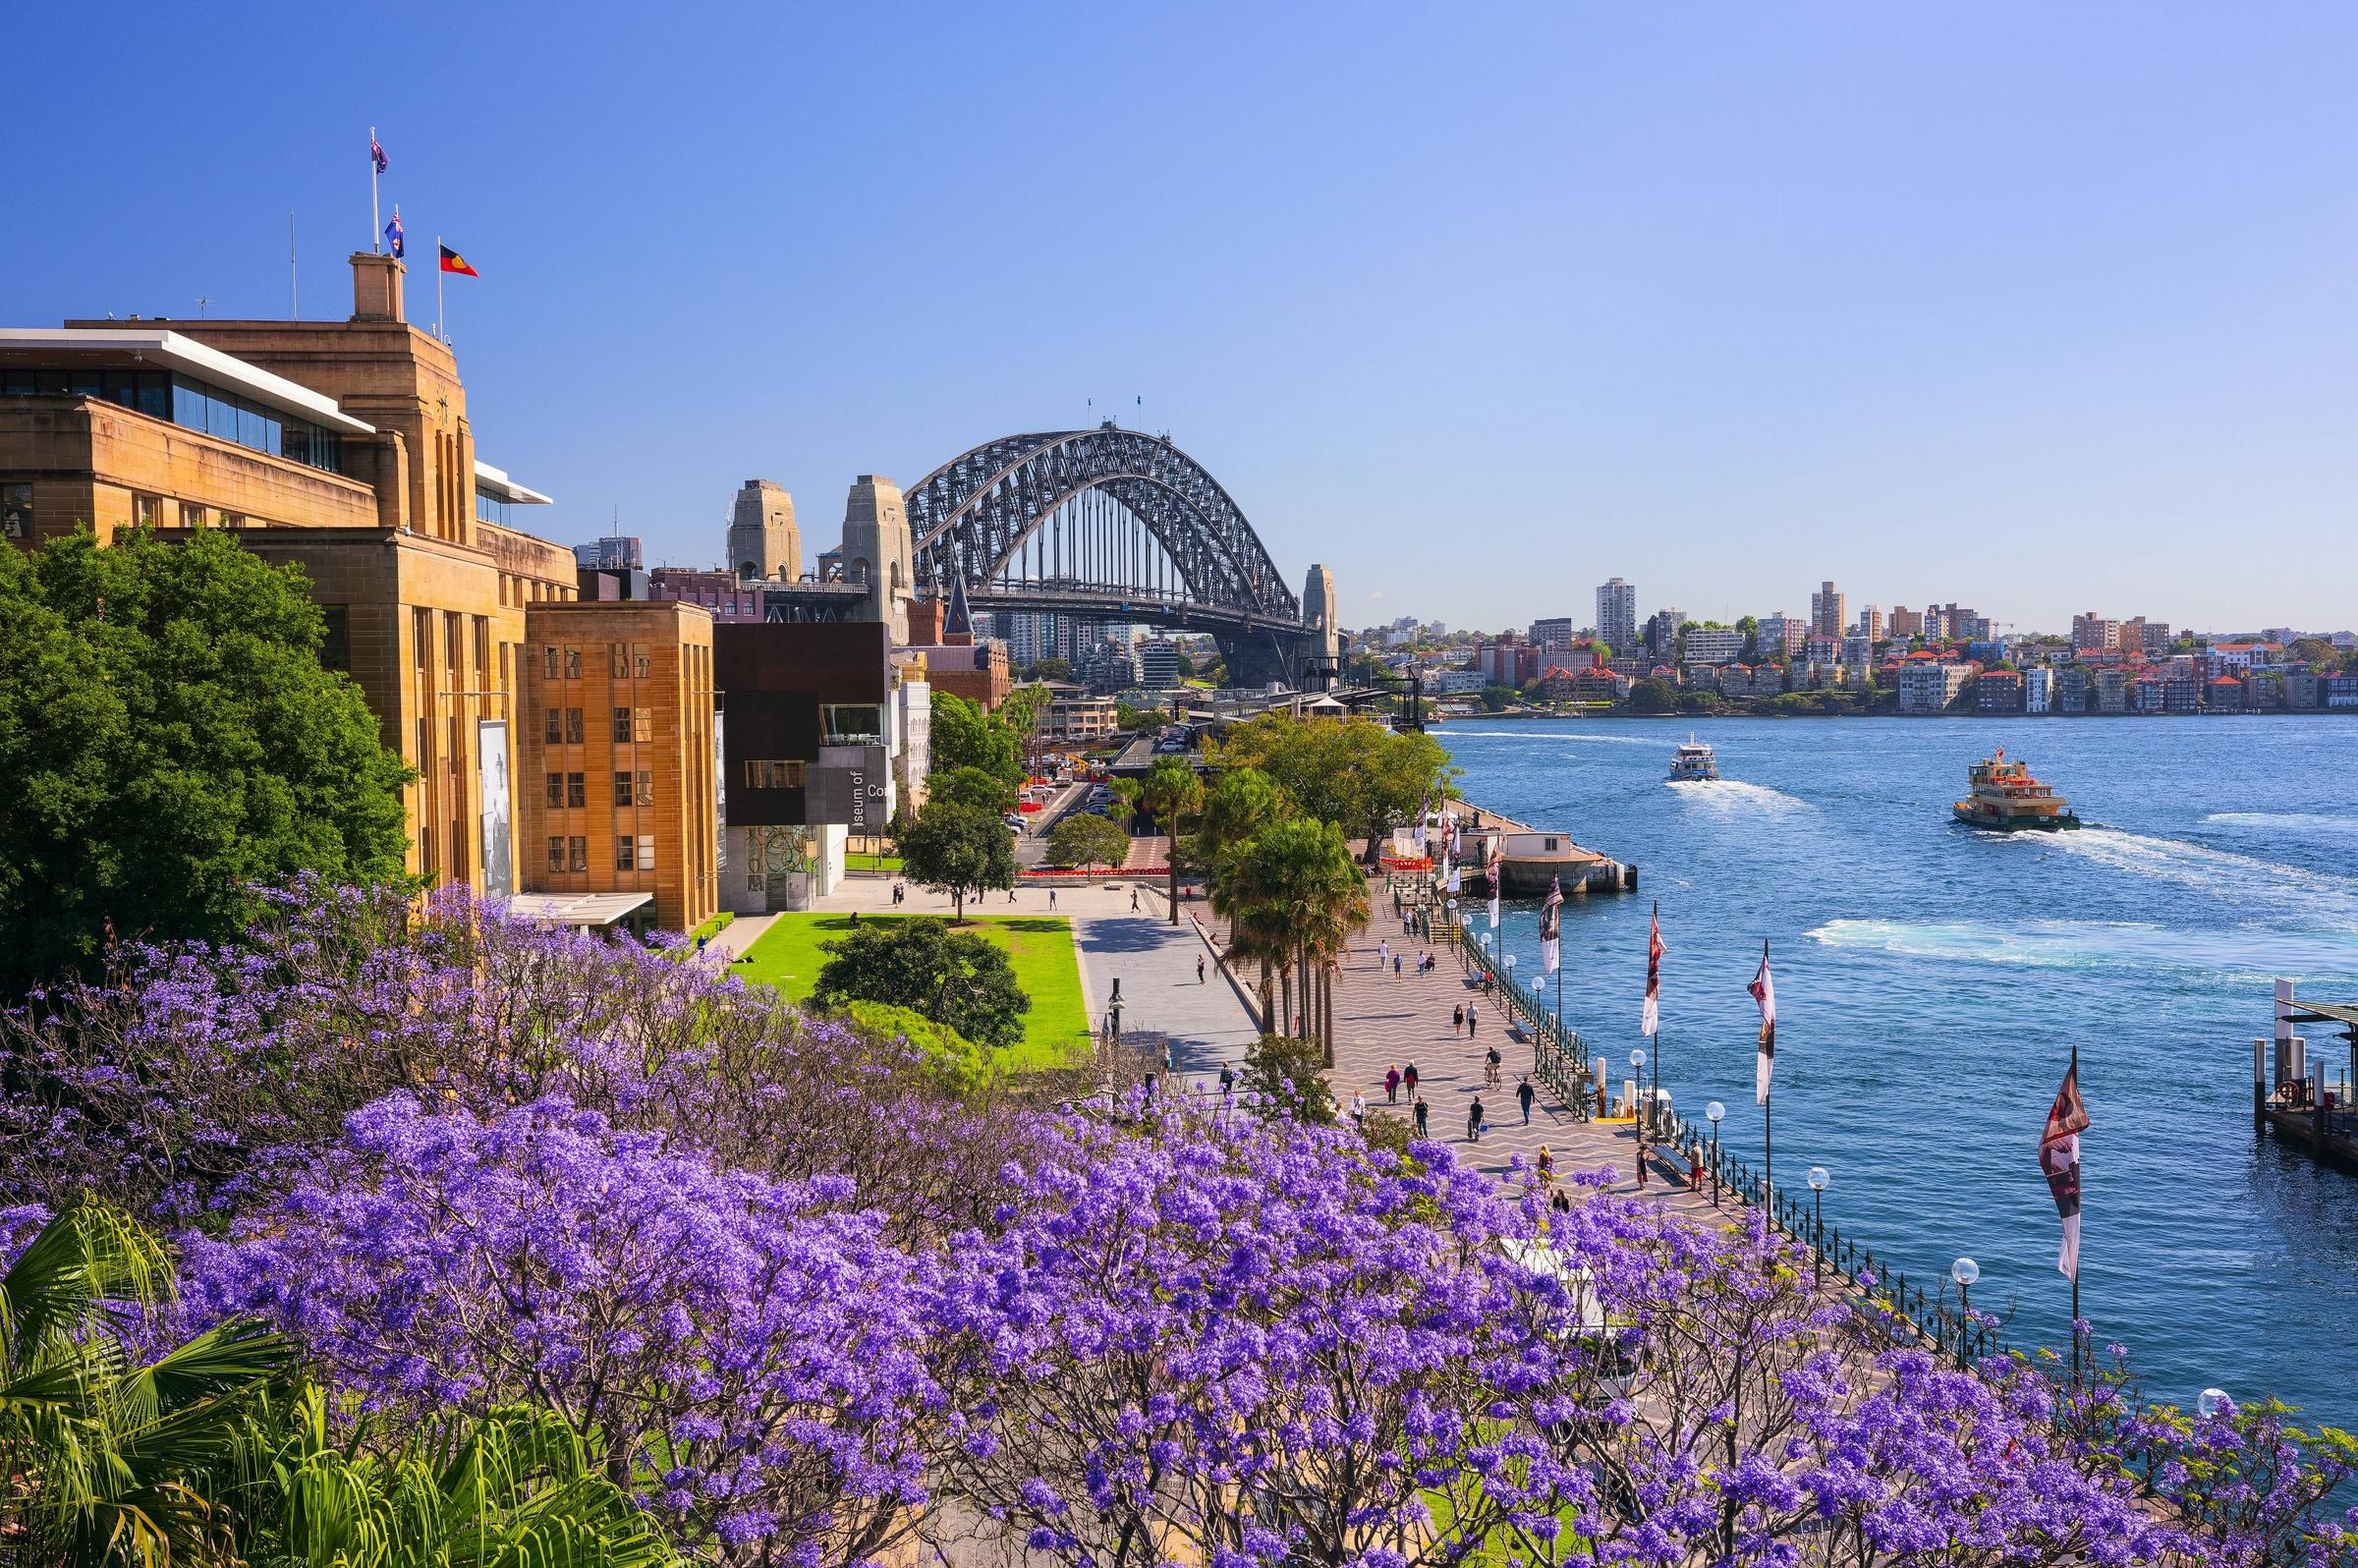 Image from Destination NSW